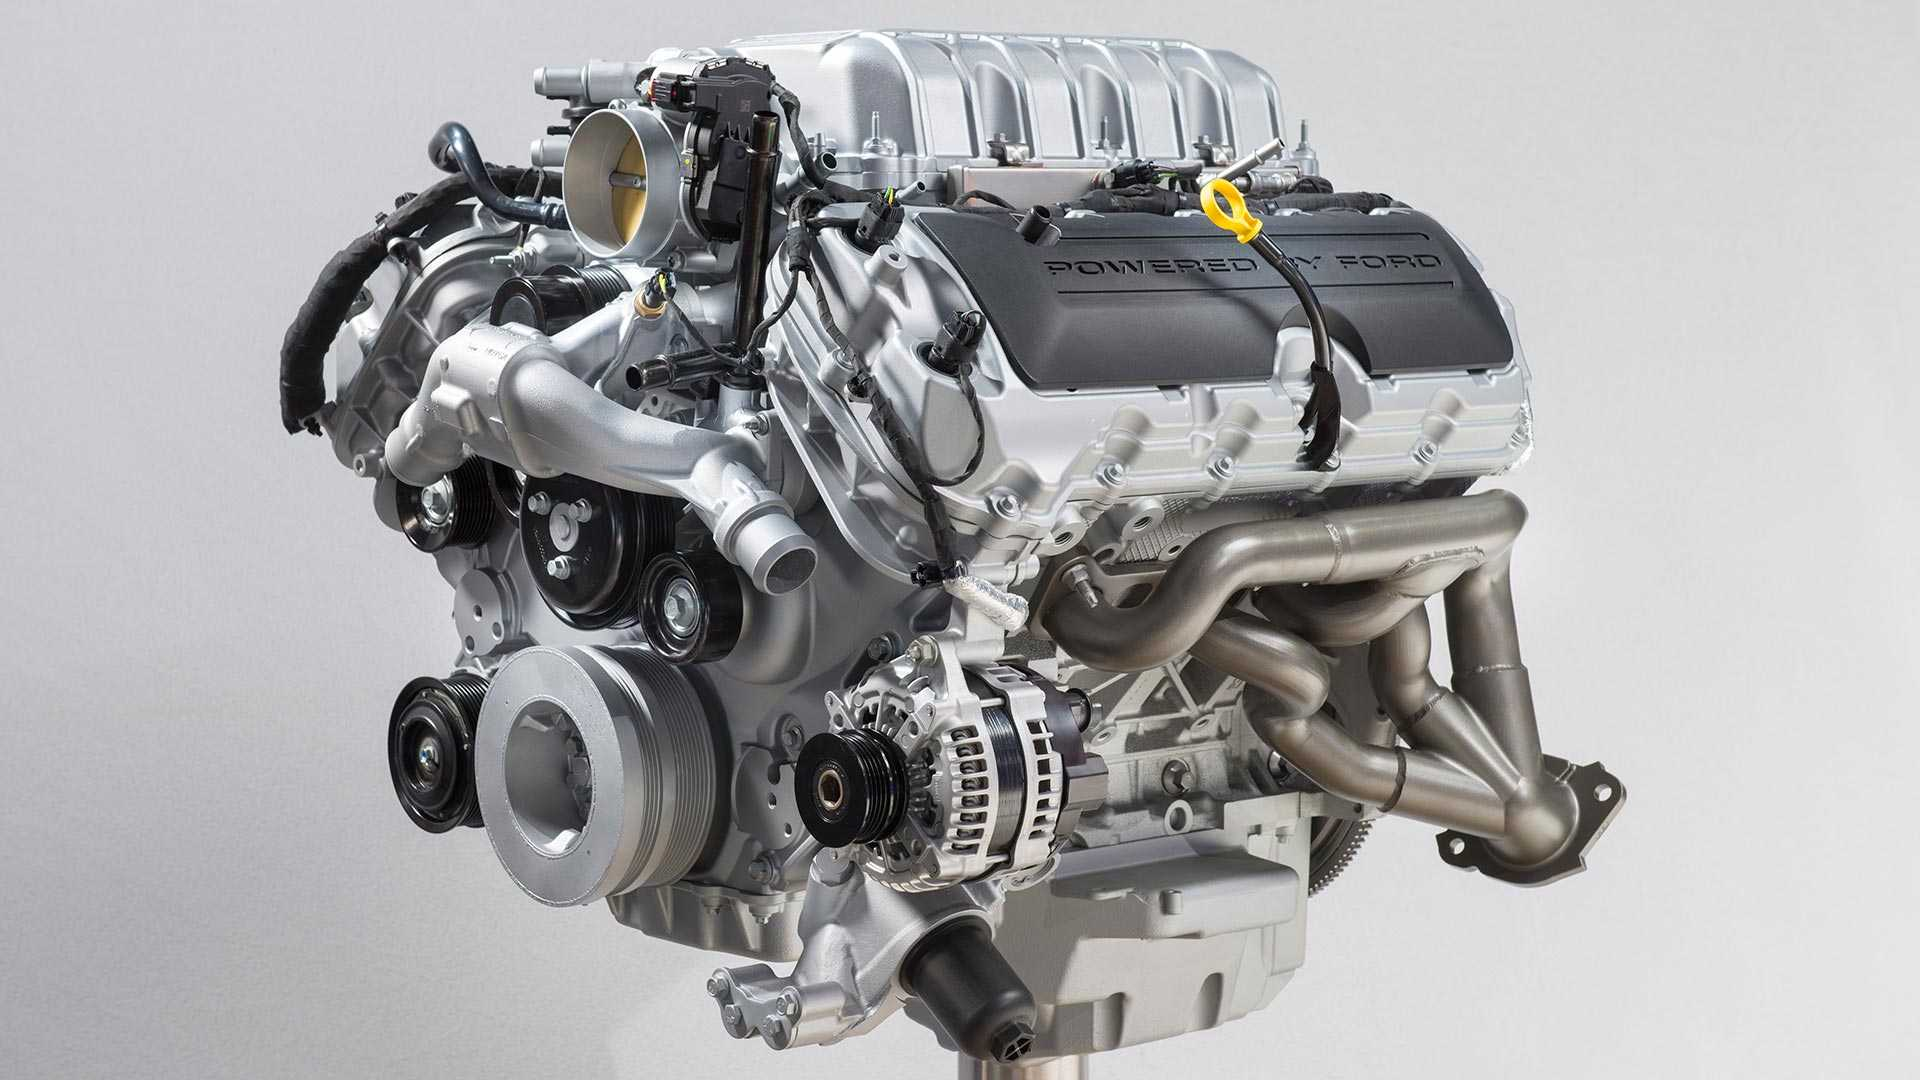 https://cdn.motor1.com/images/mgl/0xqy9/s6/2020-ford-mustang-shelby-gt500-engine.jpg